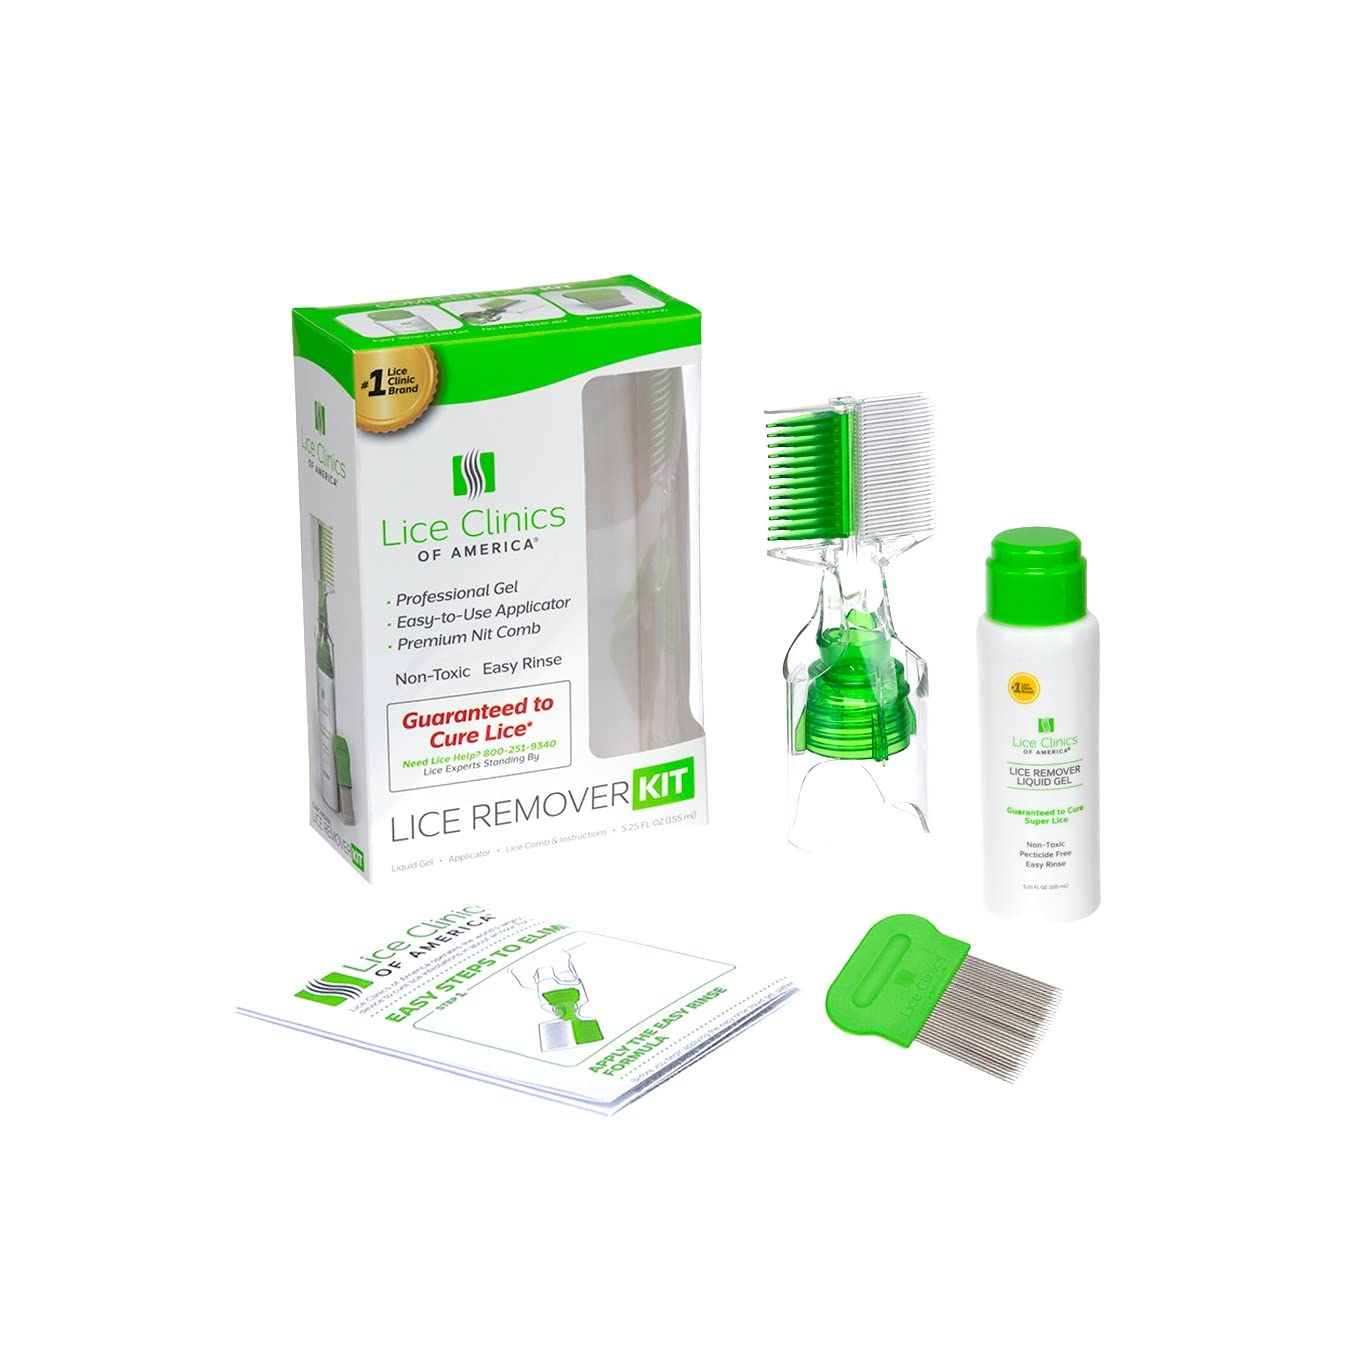 Upbring Marketplace Donate To Families In Need Via Wishlists Milo Cube 100 Pcs Free Bubble Wrapp Lice Remover Kit Guaranteed Cure Even Super Licesafe Non